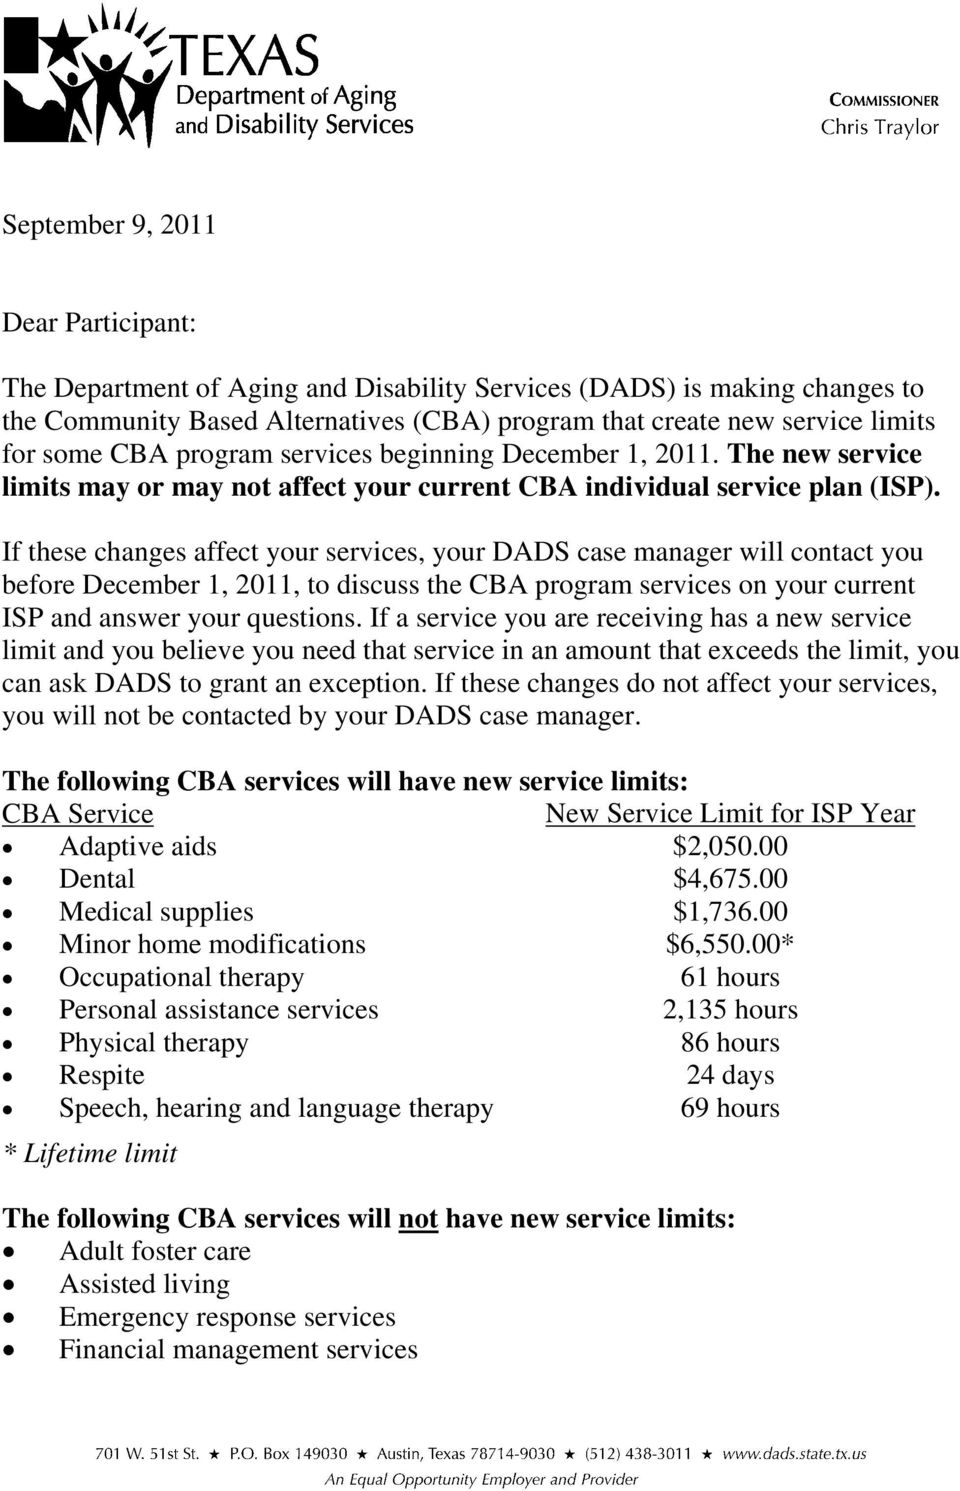 If these changes affect your services, your DADS case manager will contact you before December 1, 2011, to discuss the CBA program services on your current ISP and answer your questions.